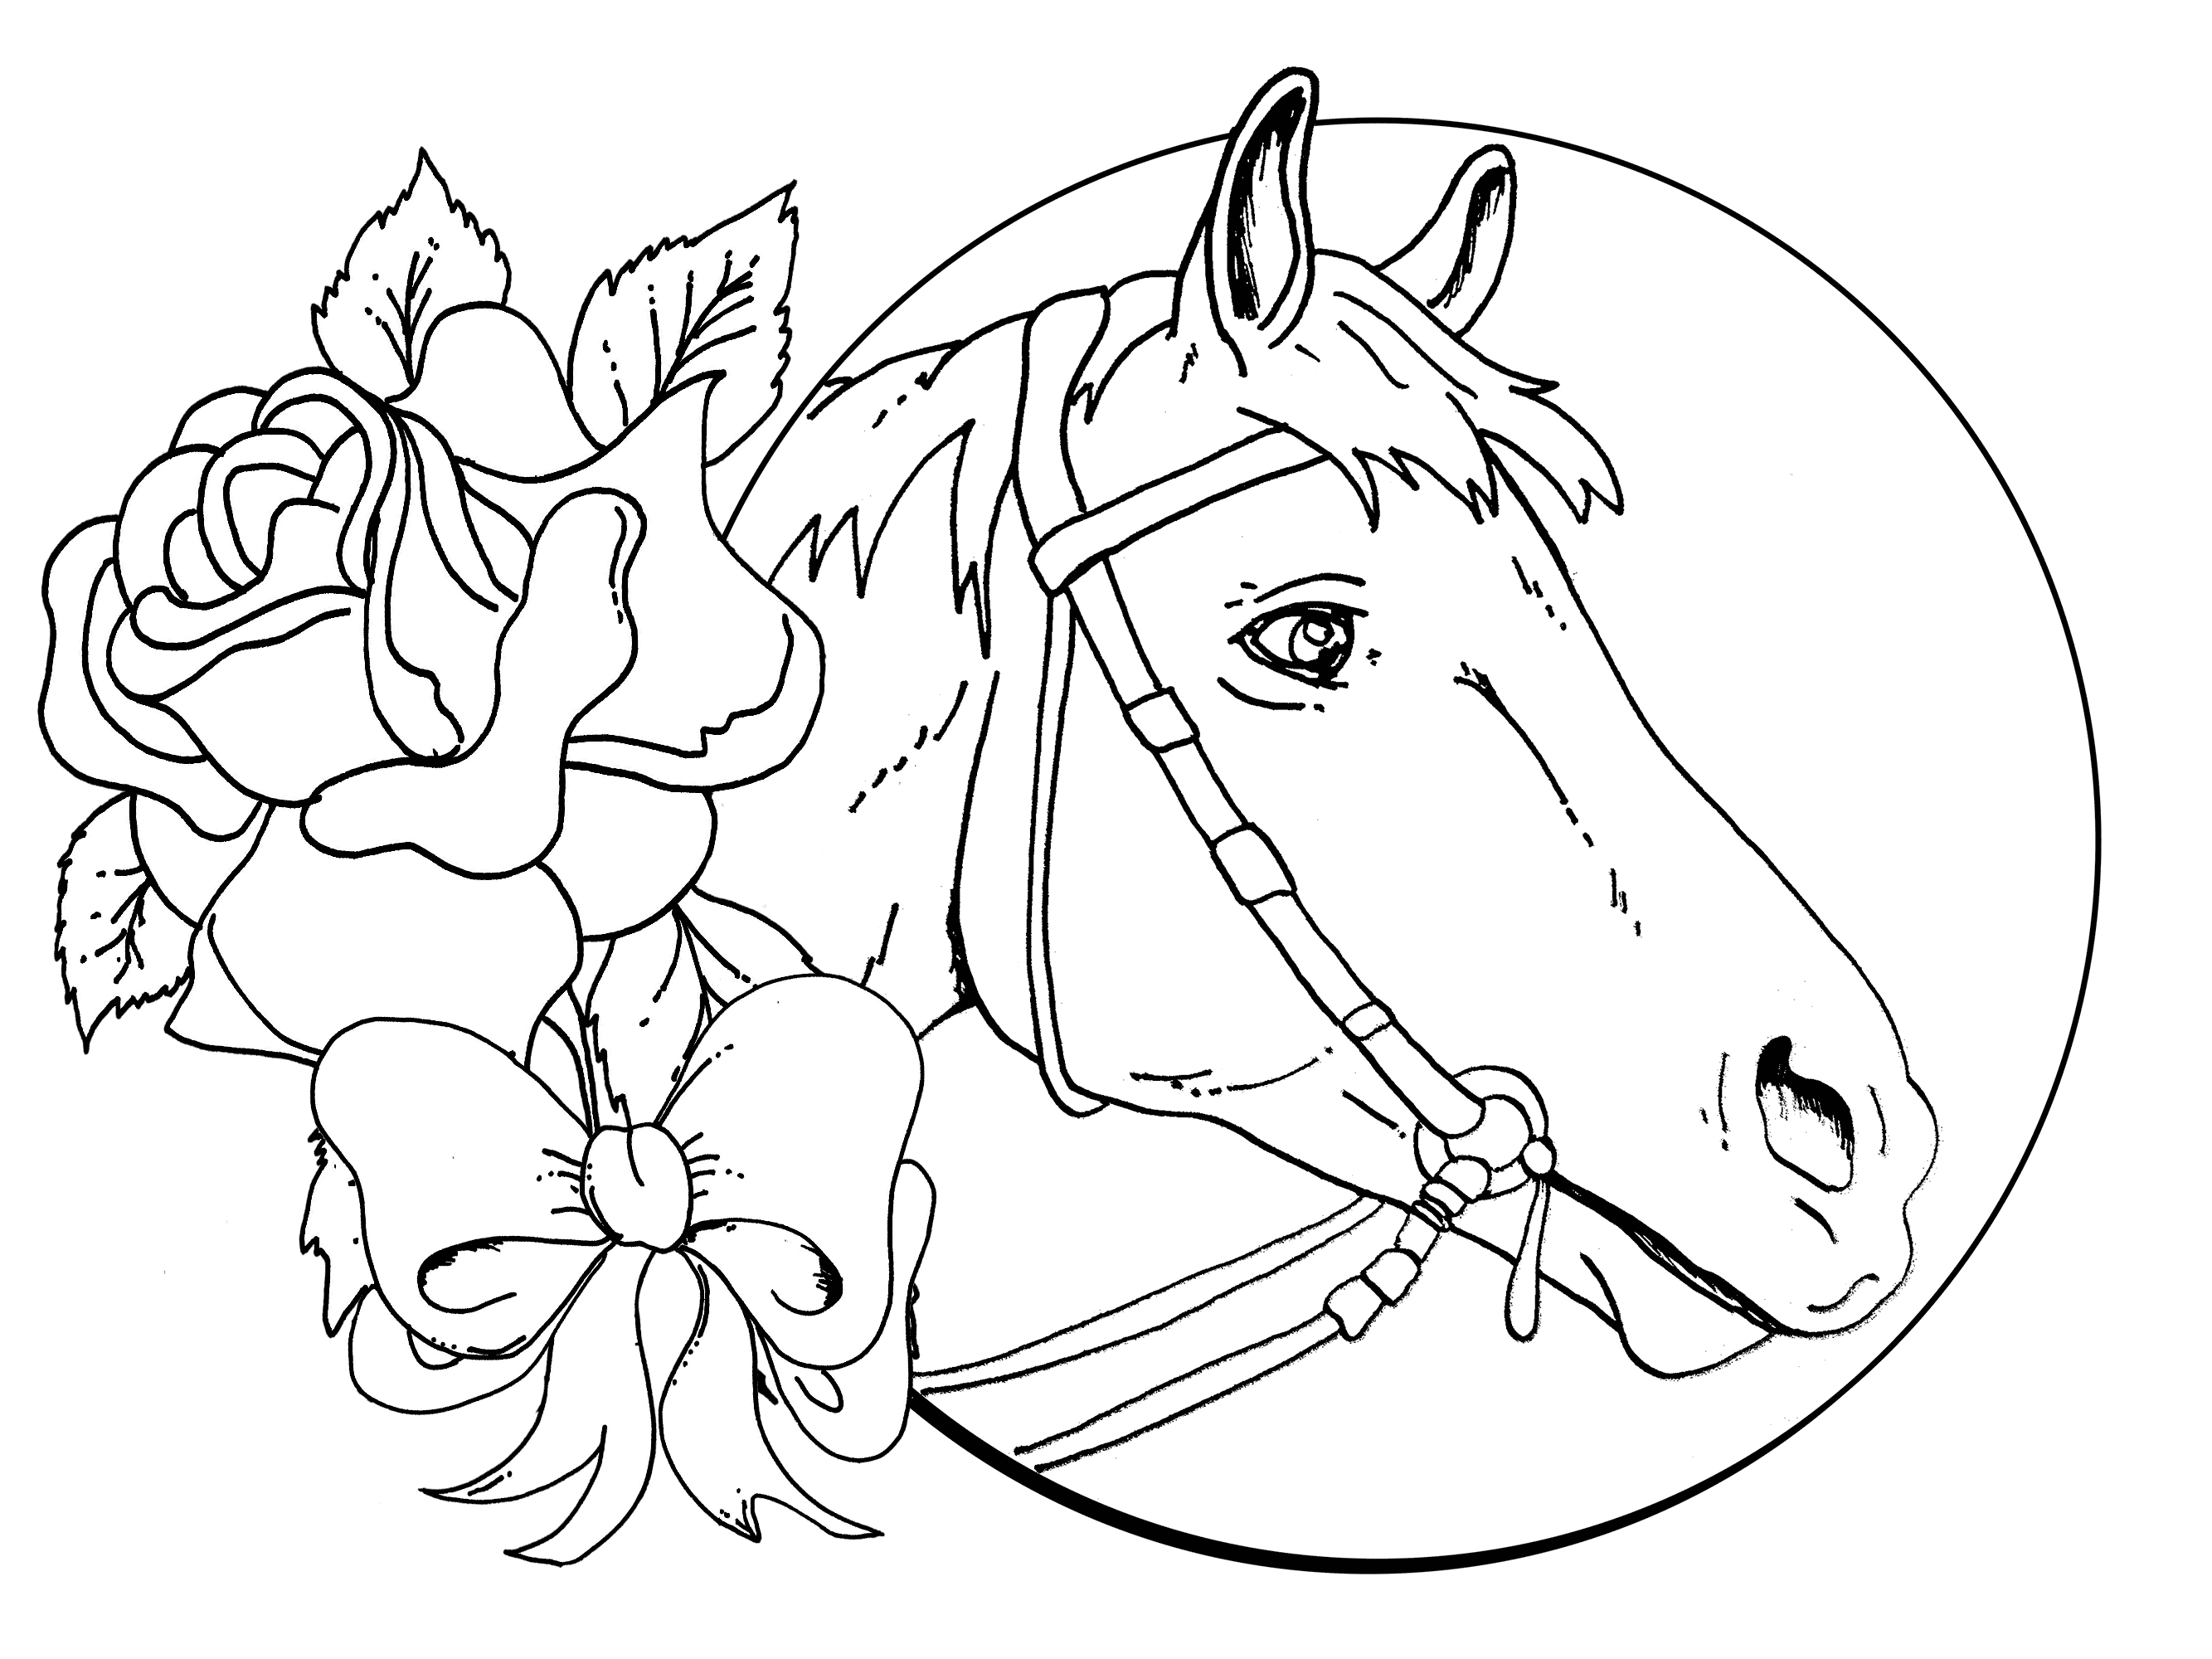 coloring sheets for girls coloring pages for girls dr odd for girls sheets coloring